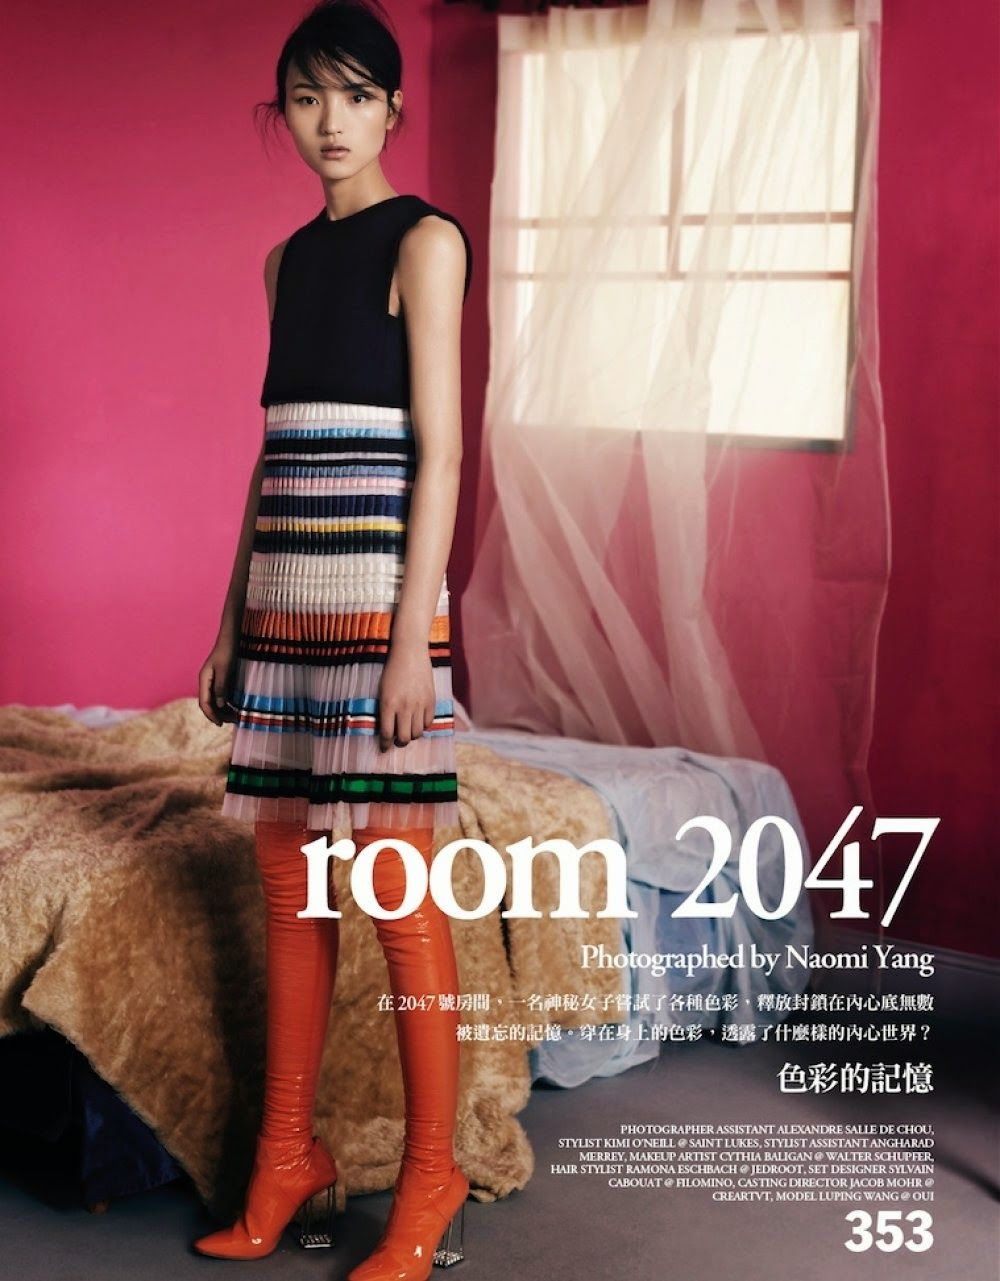 """Room 2047"" by Naomi Yang for Vogue Taiwan June 2015"